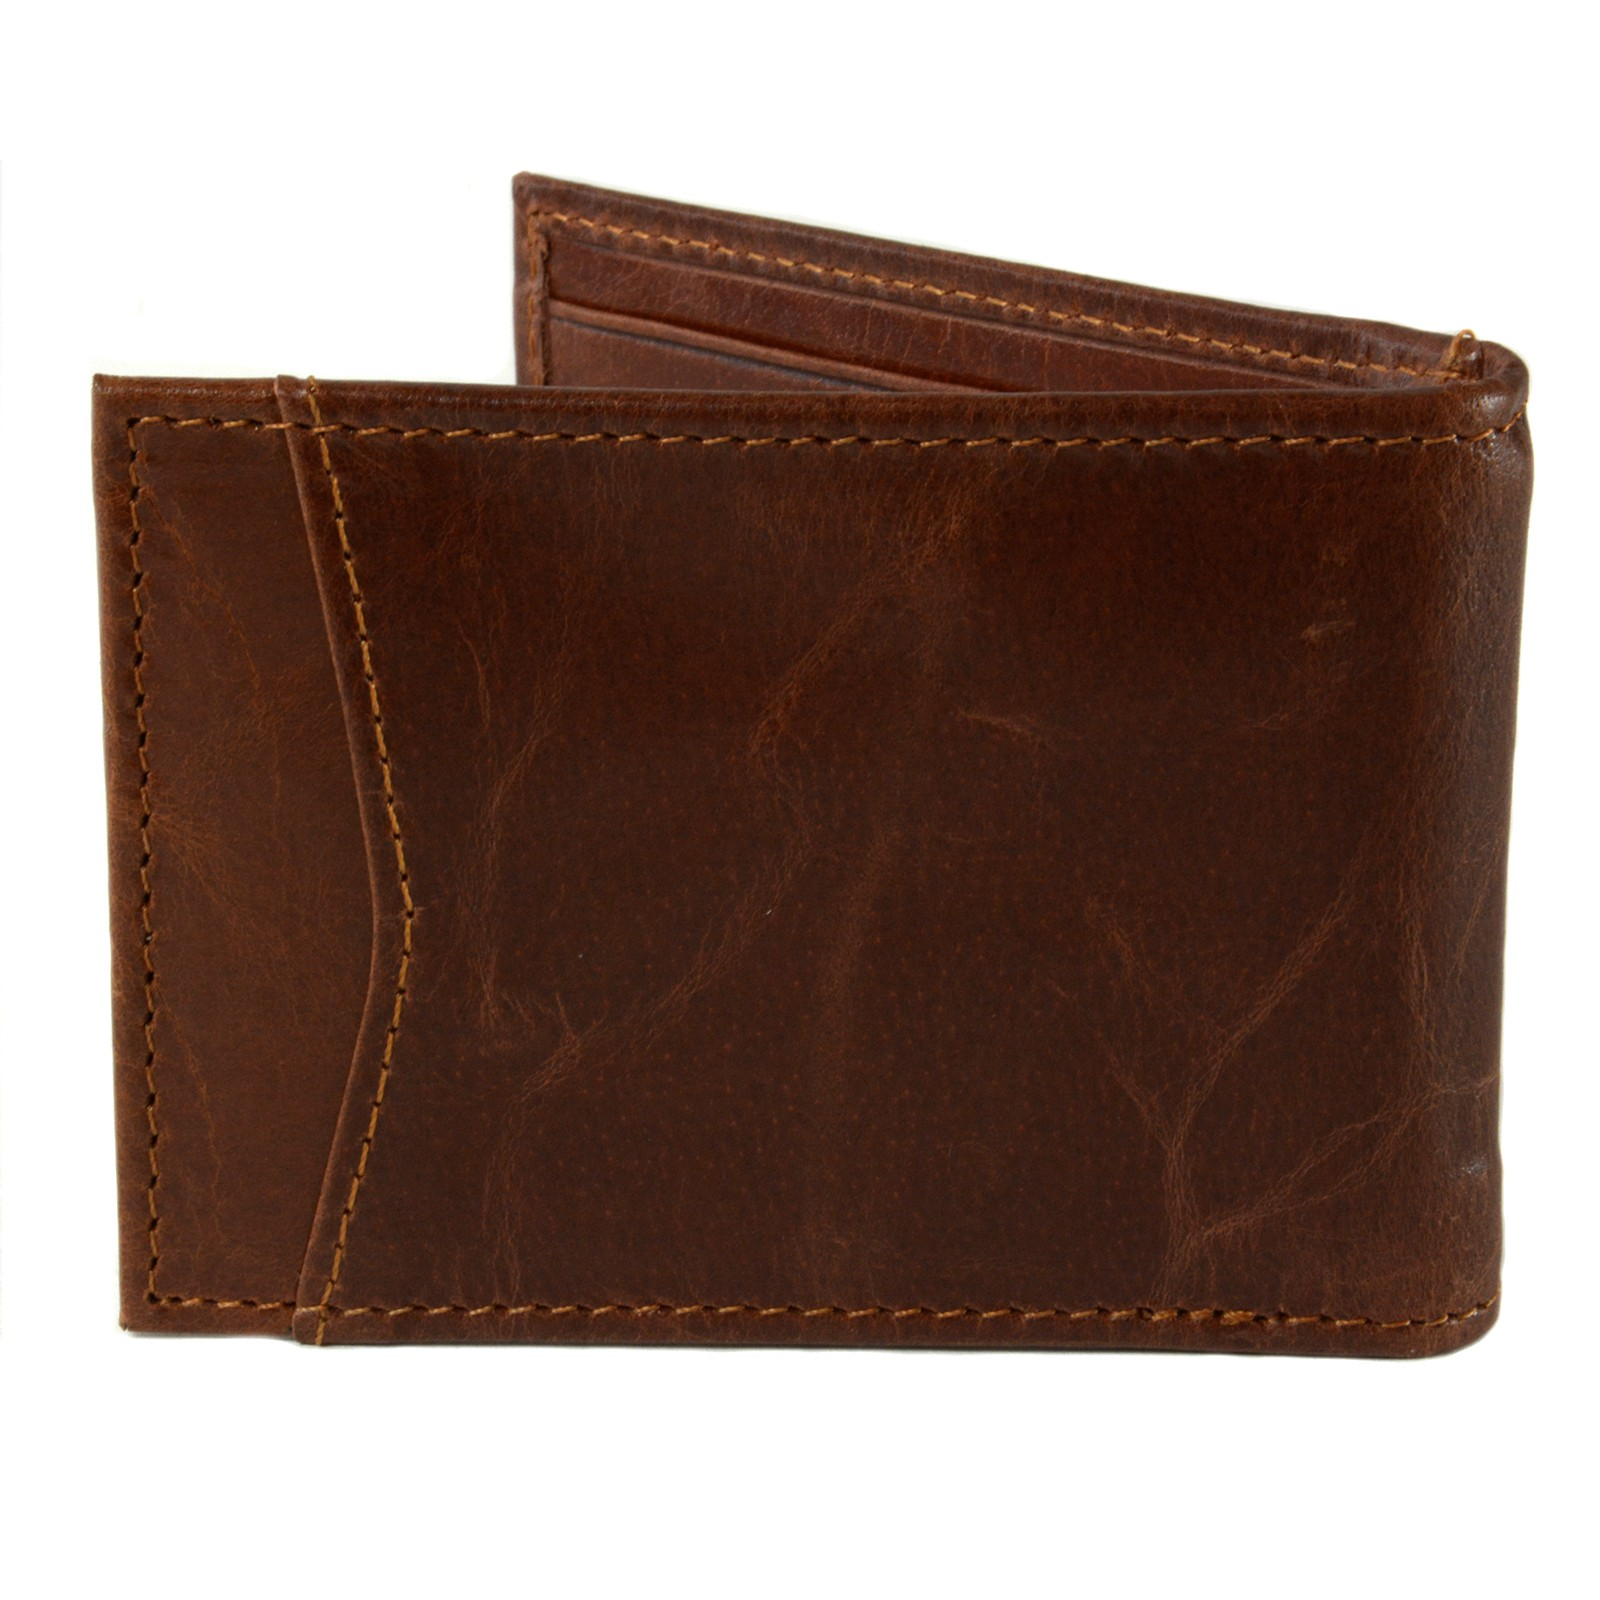 Alpine-Swiss-Mens-Bifold-Money-Clip-Spring-Loaded-Leather-ID-Front-Pocket-Wallet thumbnail 25